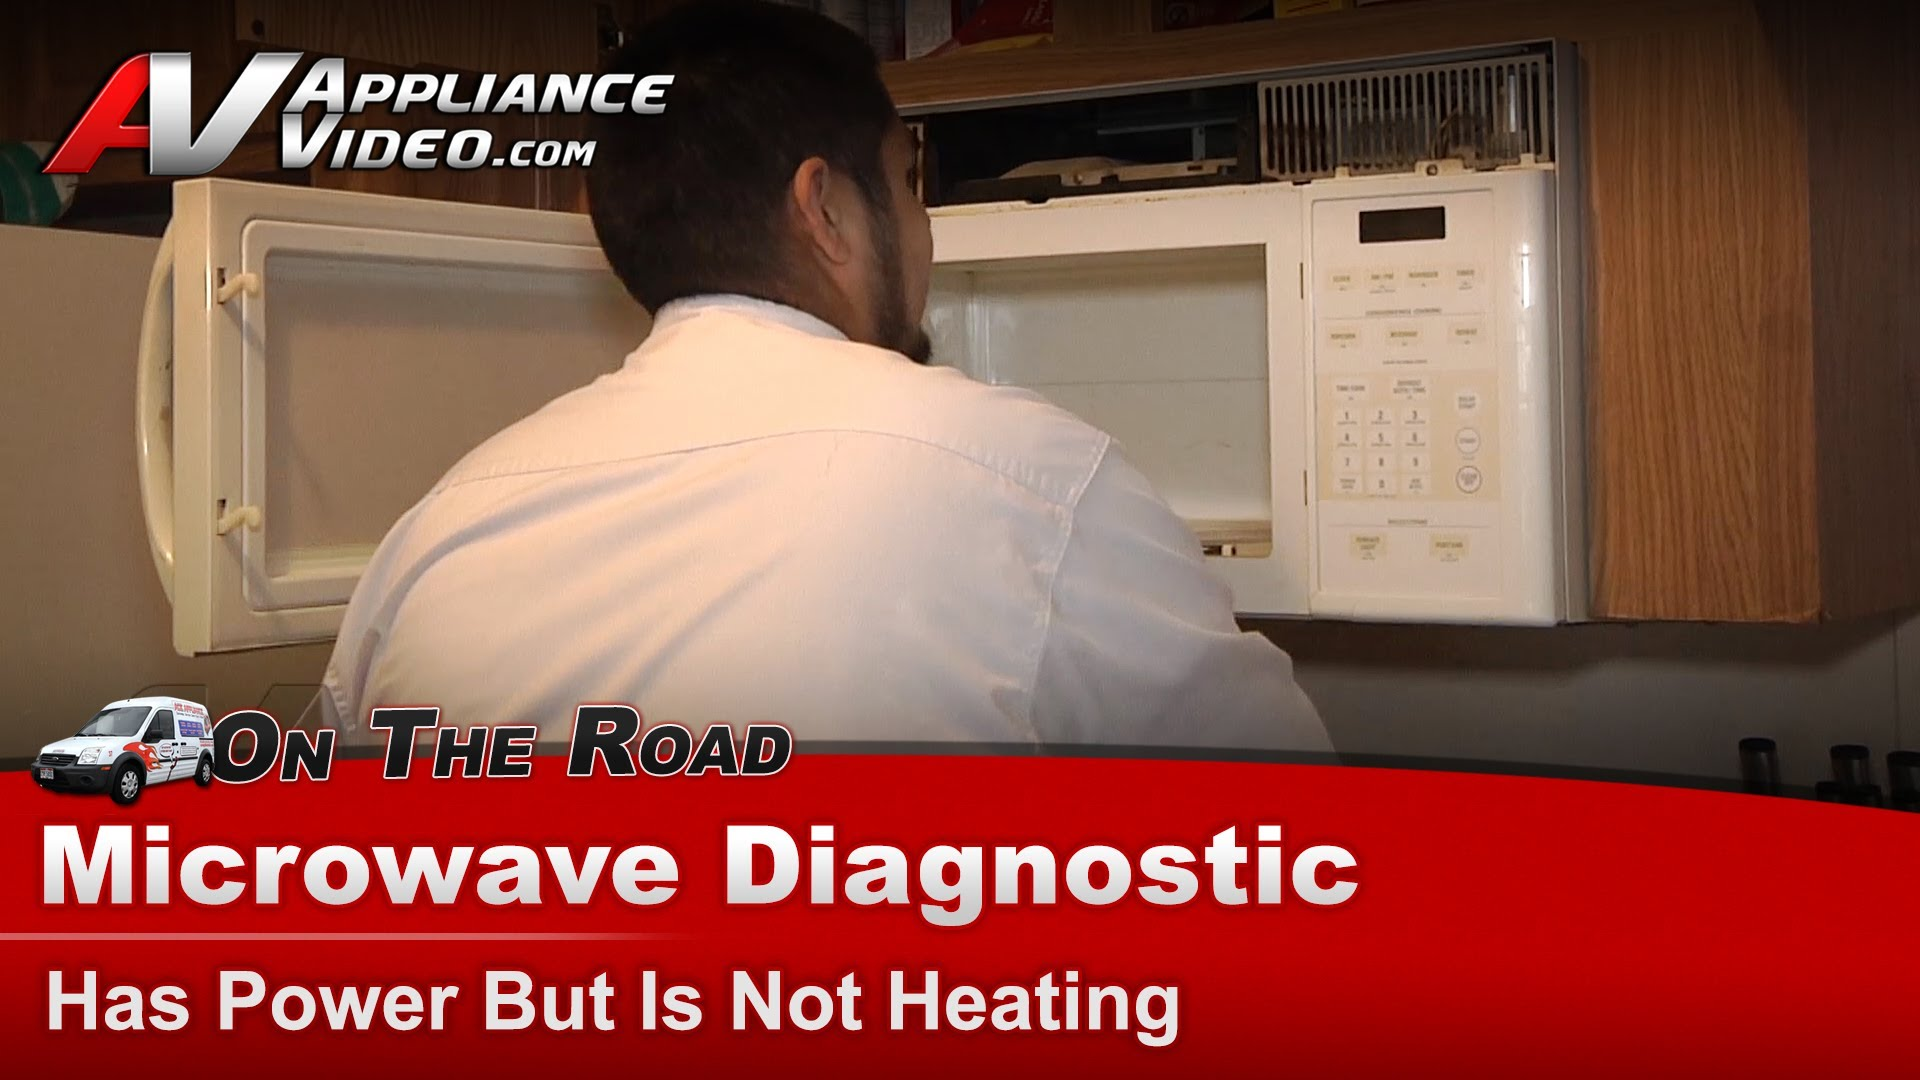 Ge Jdm1630wb004 Microwave Diagnostic Has Power But Is